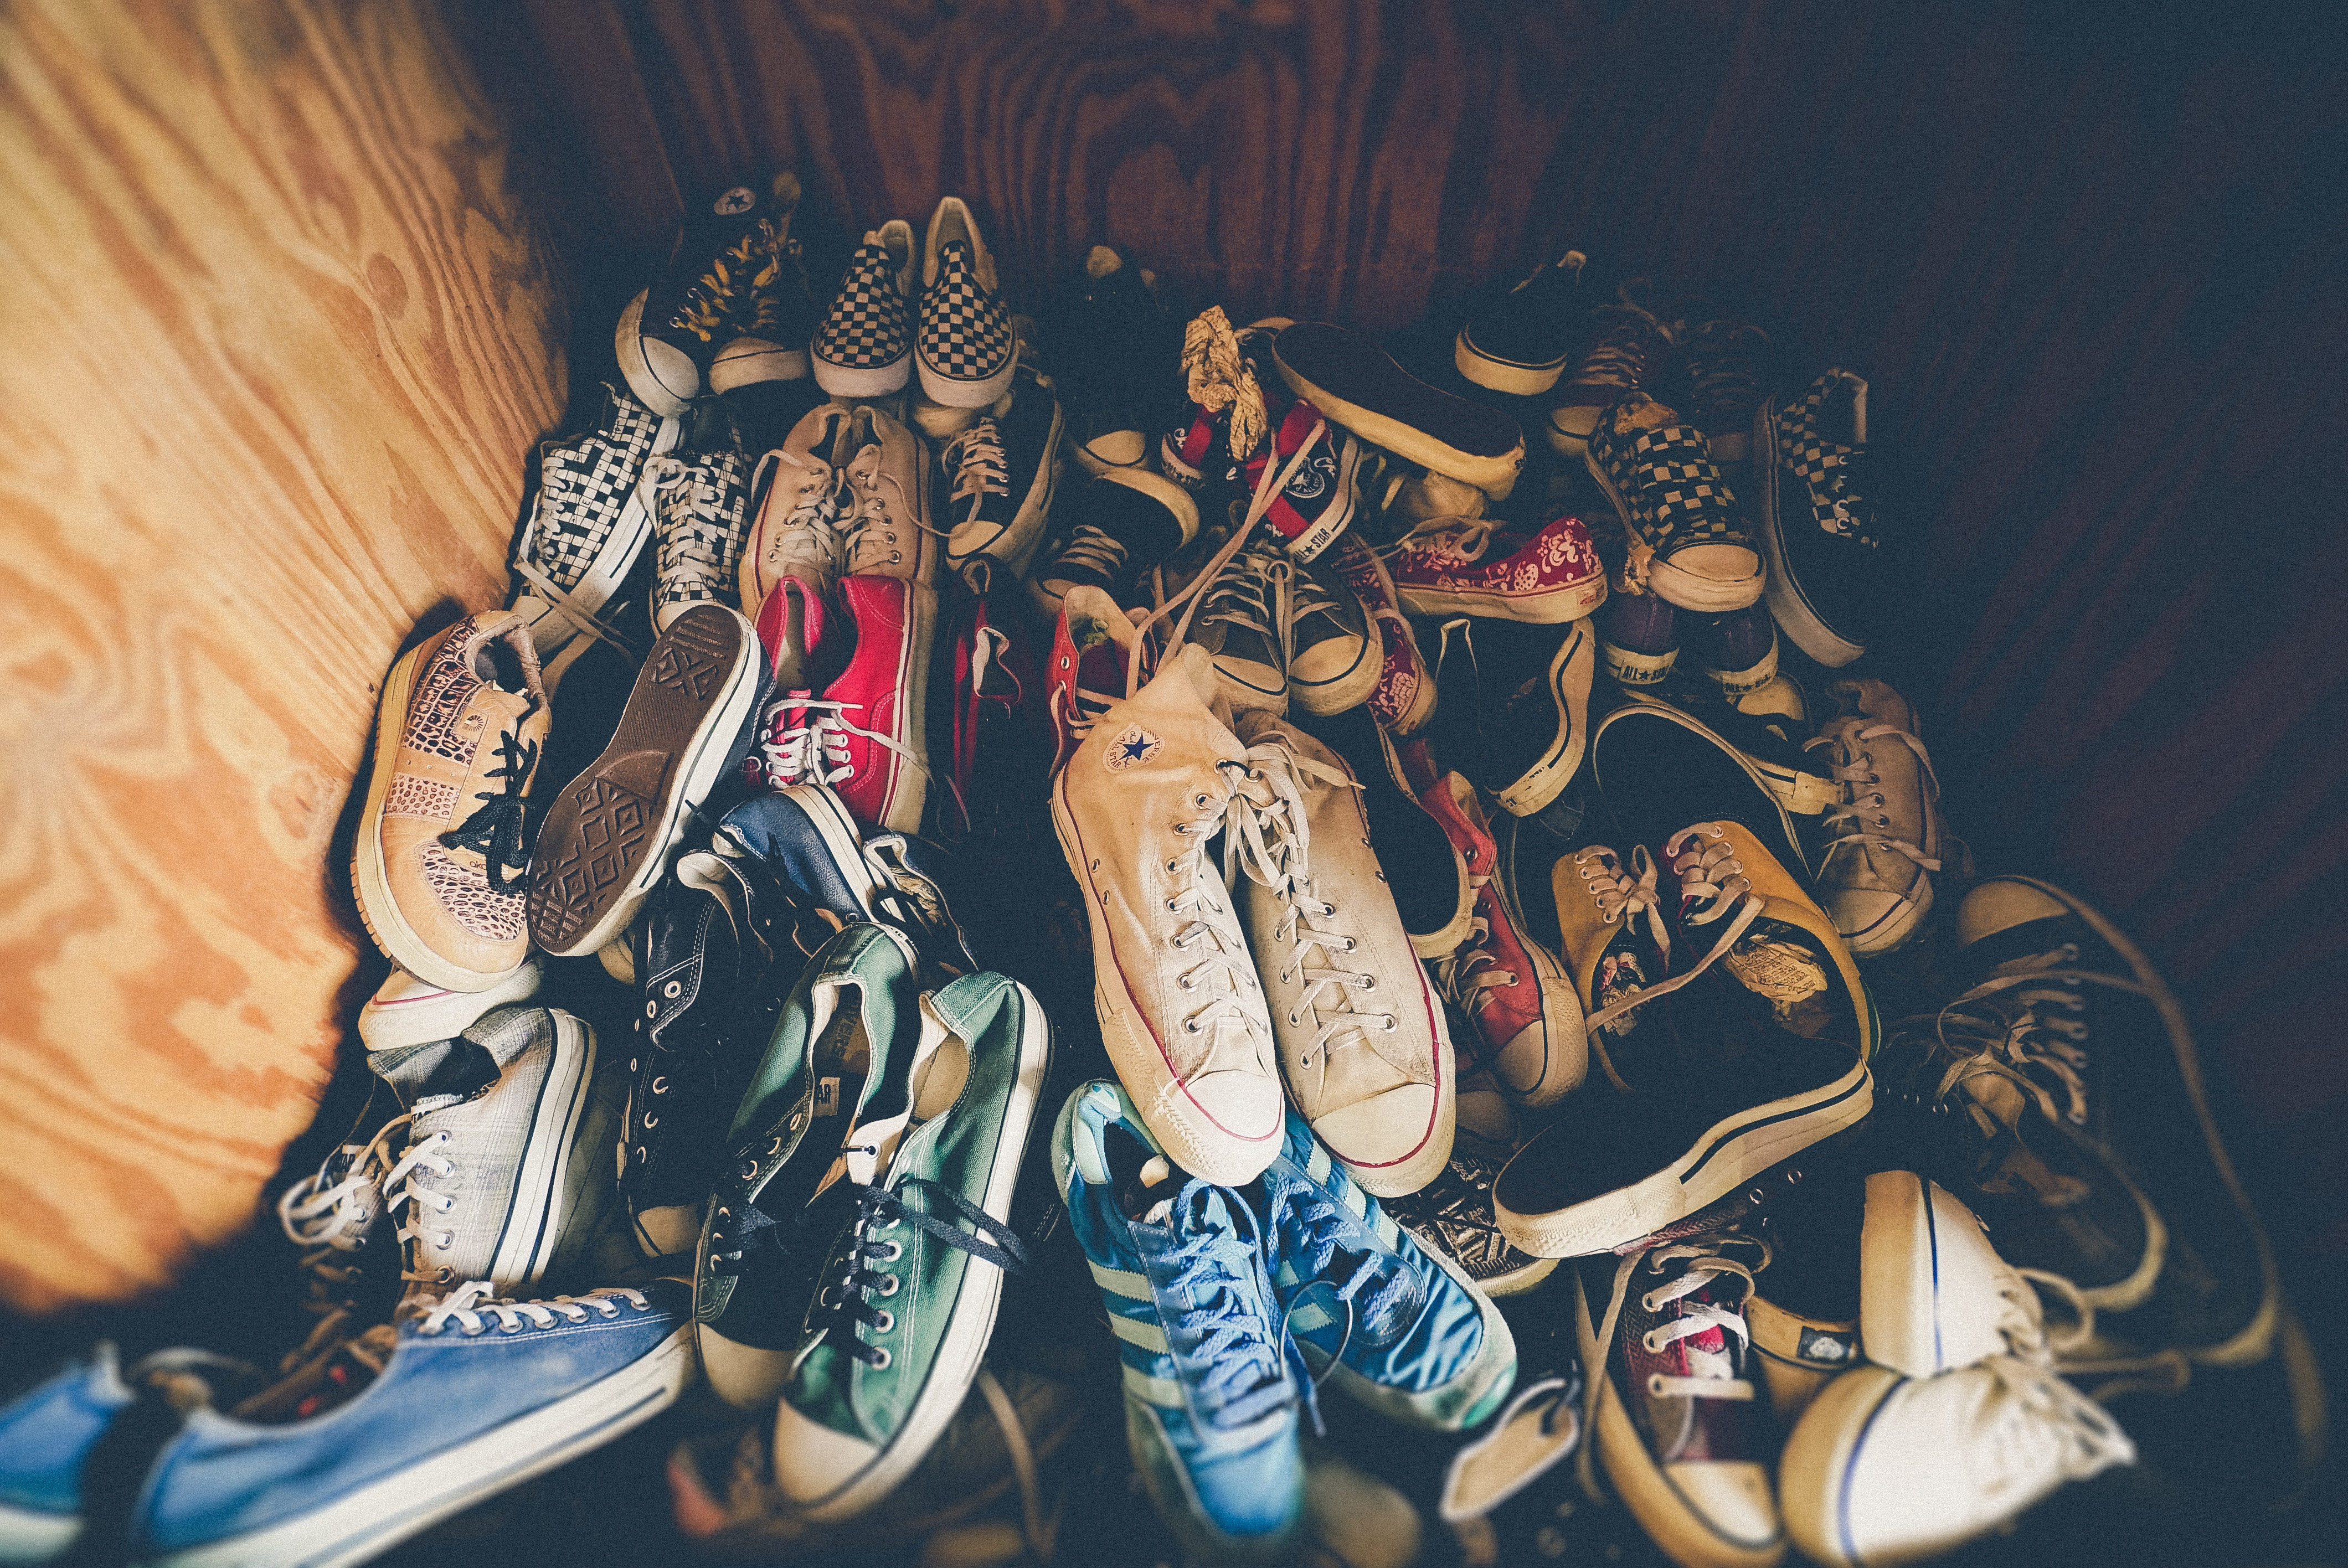 Space filled with shoes.